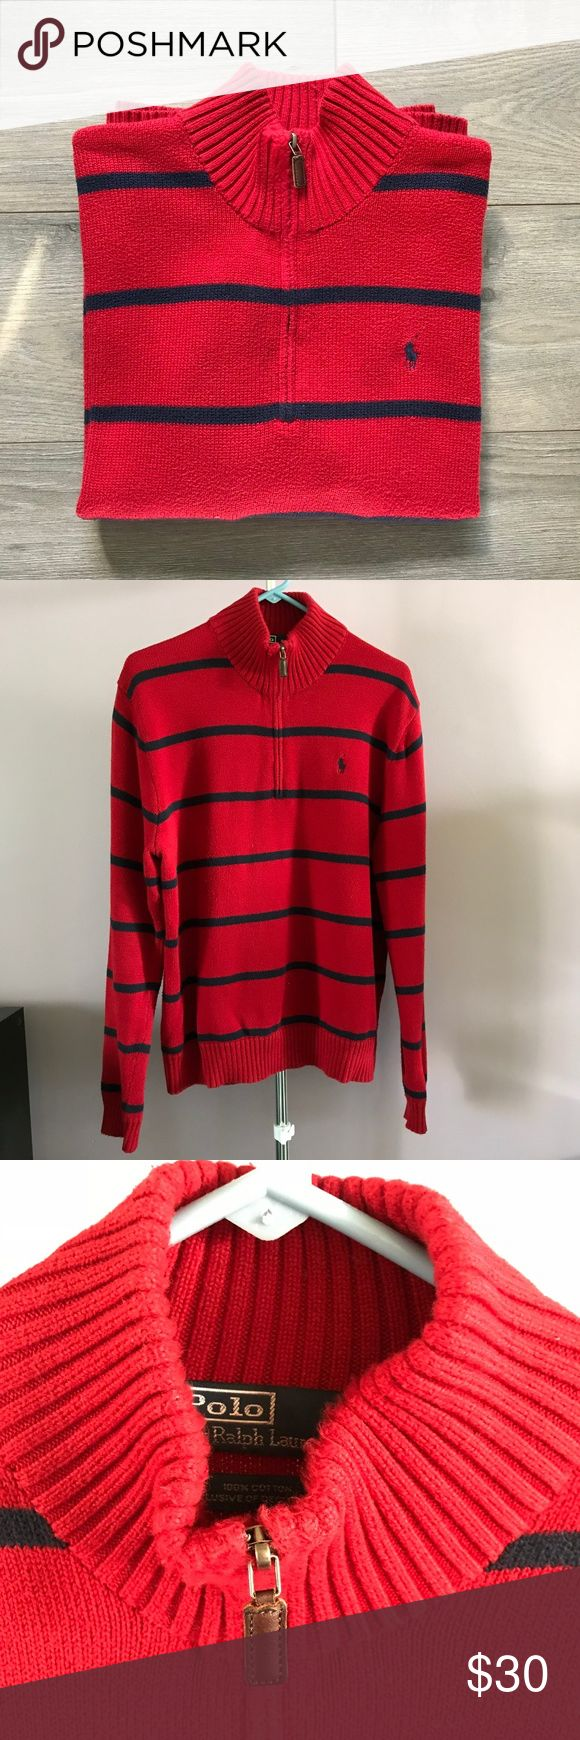 Men's Polo Ralph Lauren Red Half Zip Sweater Sweater has only been worn once and was taken to the dry cleaners - it's like new! No pills or fuzzies. Polo by Ralph Lauren Sweaters Zip Up